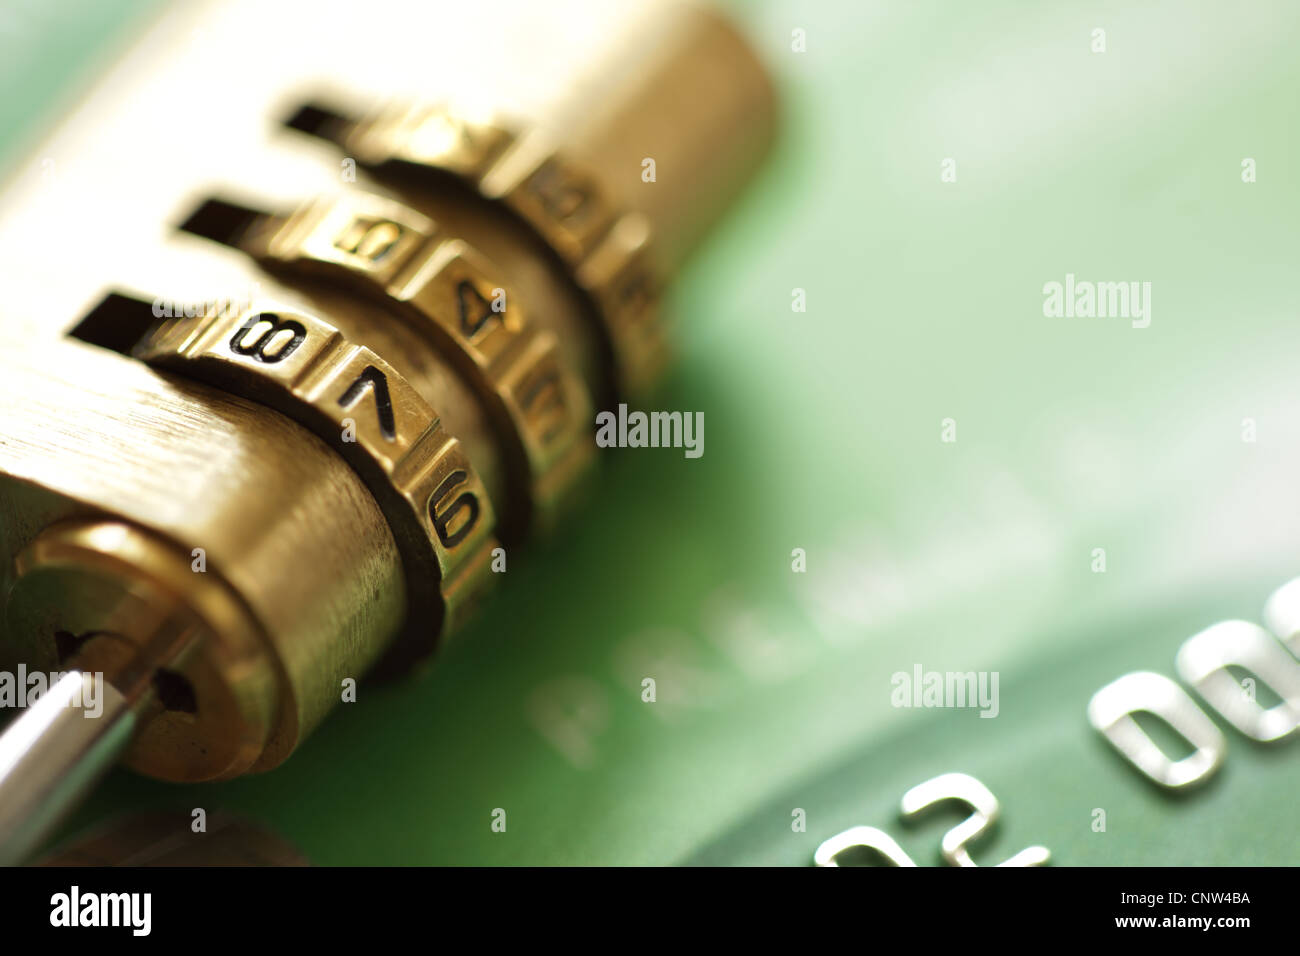 Credit card security - Stock Image